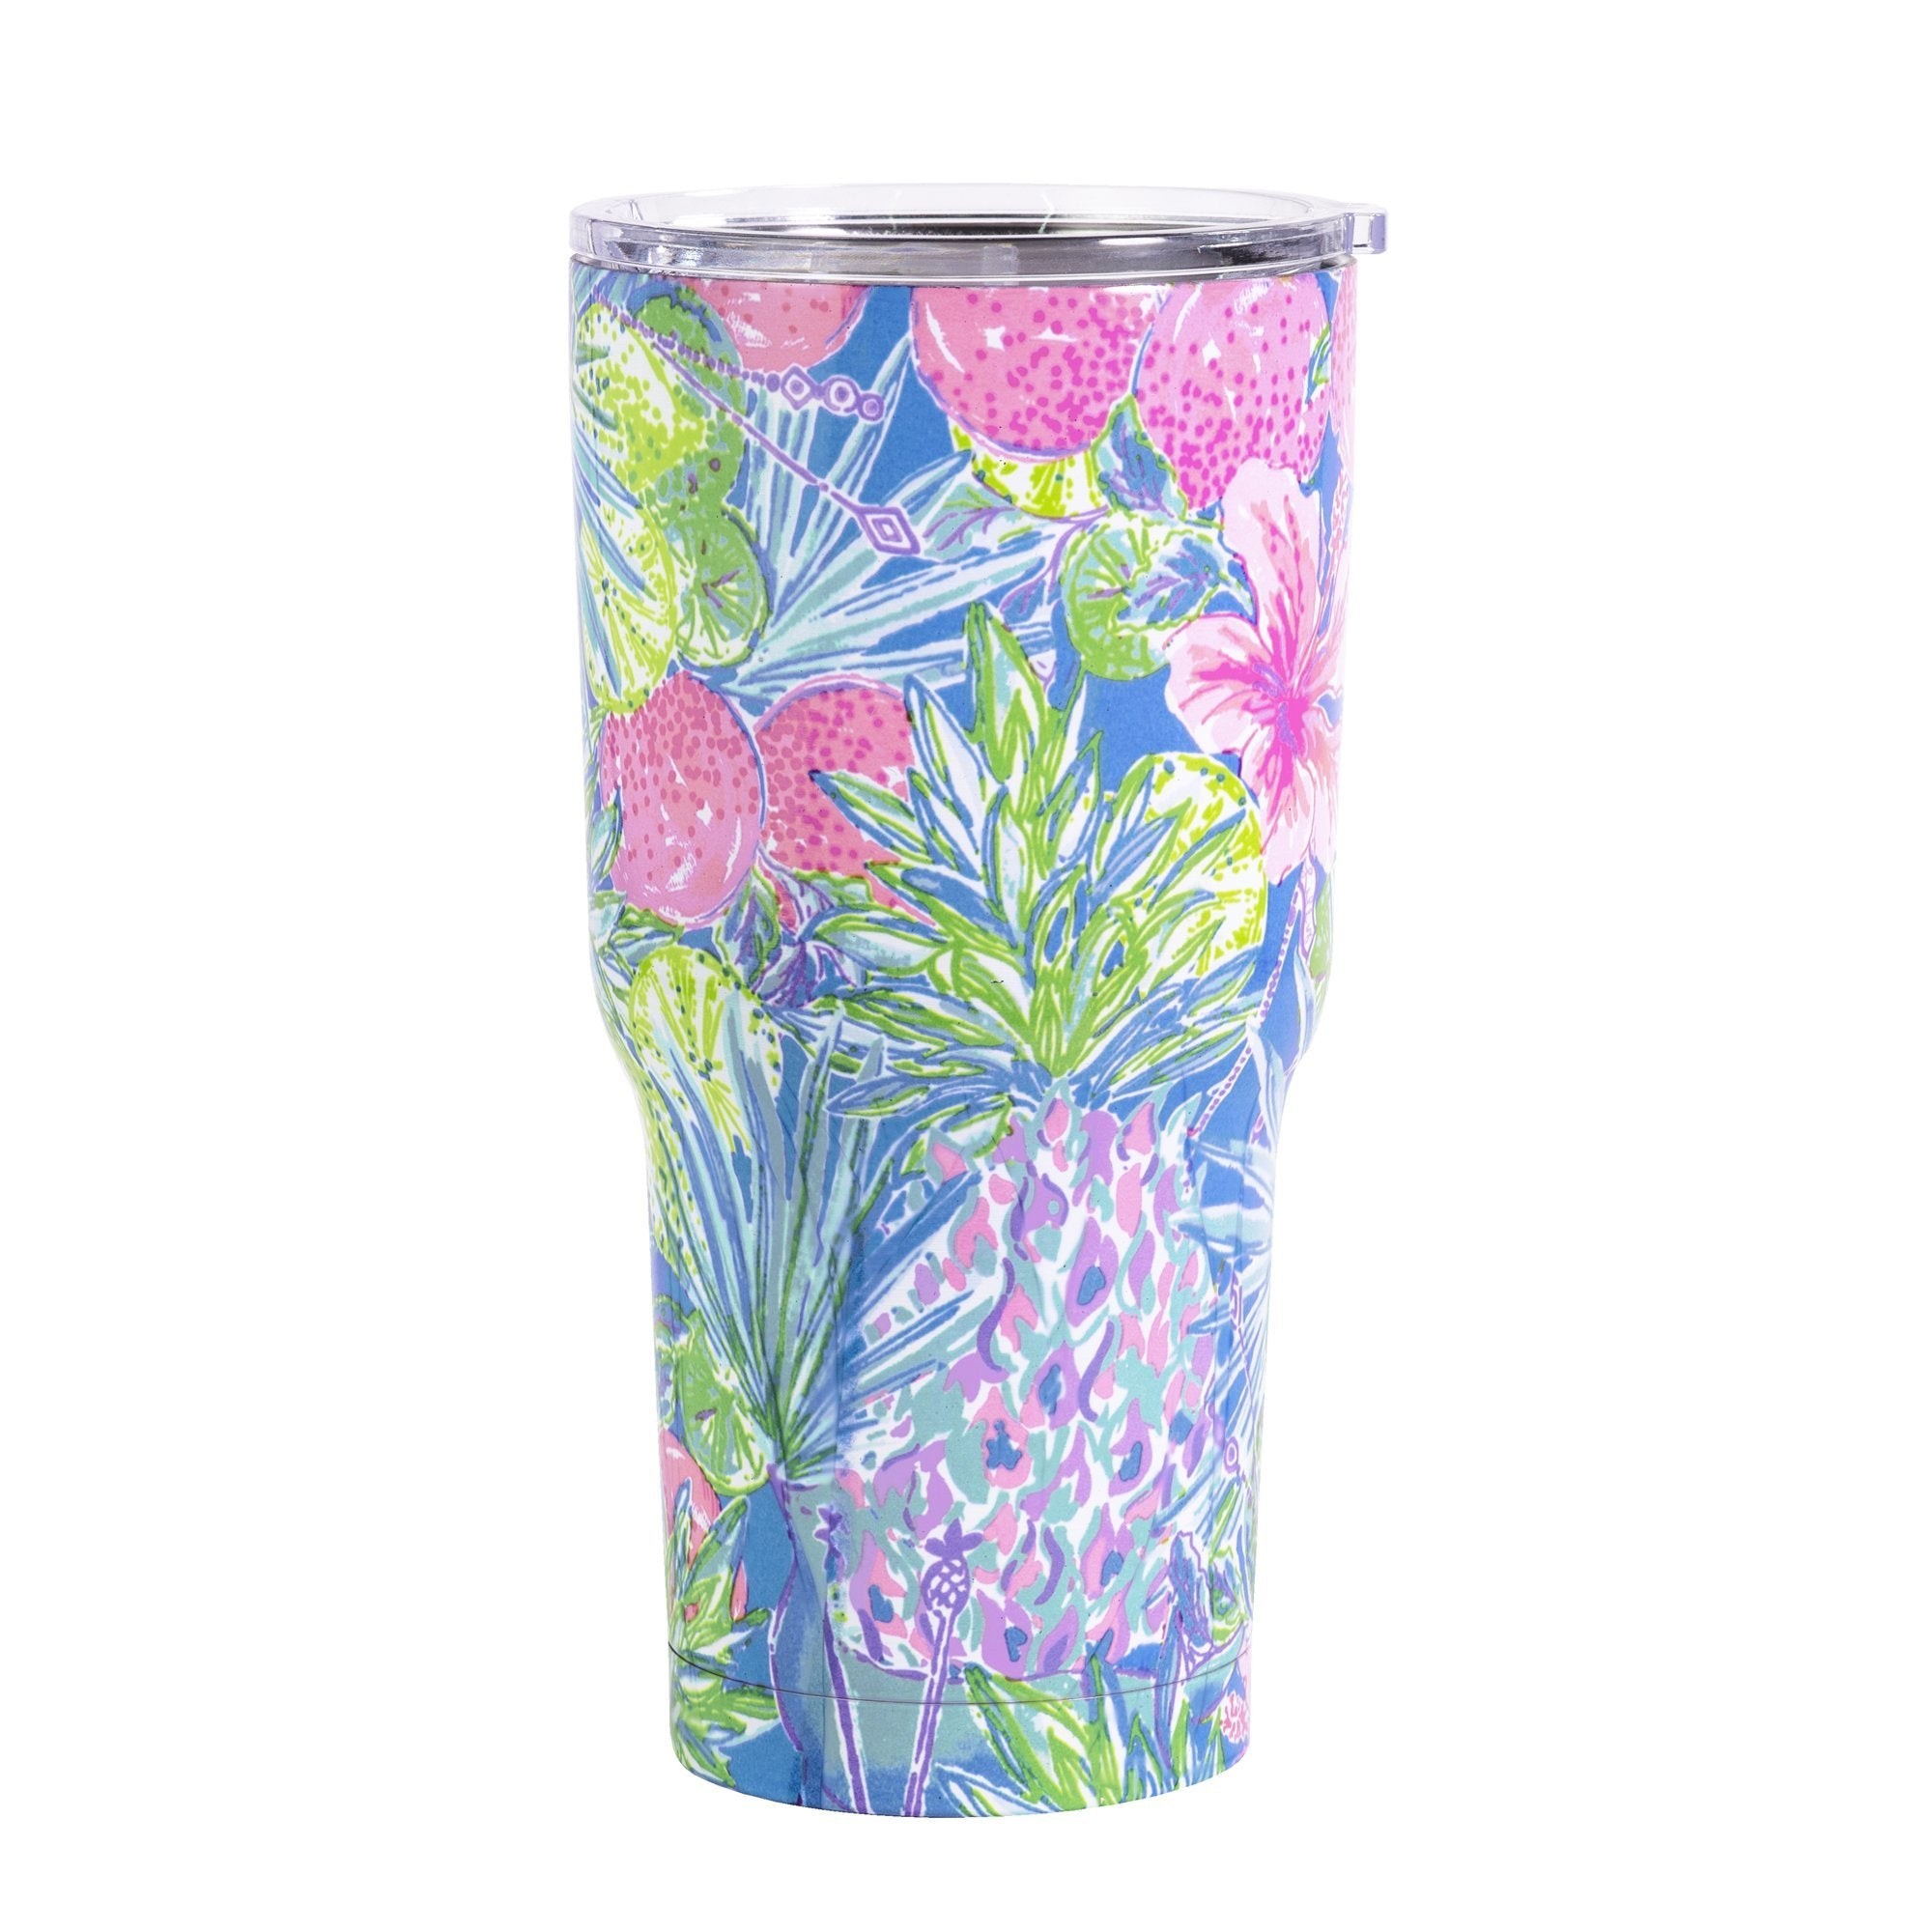 Lilly Pulitzer Stainless Steel Tumbler, Swizzle In